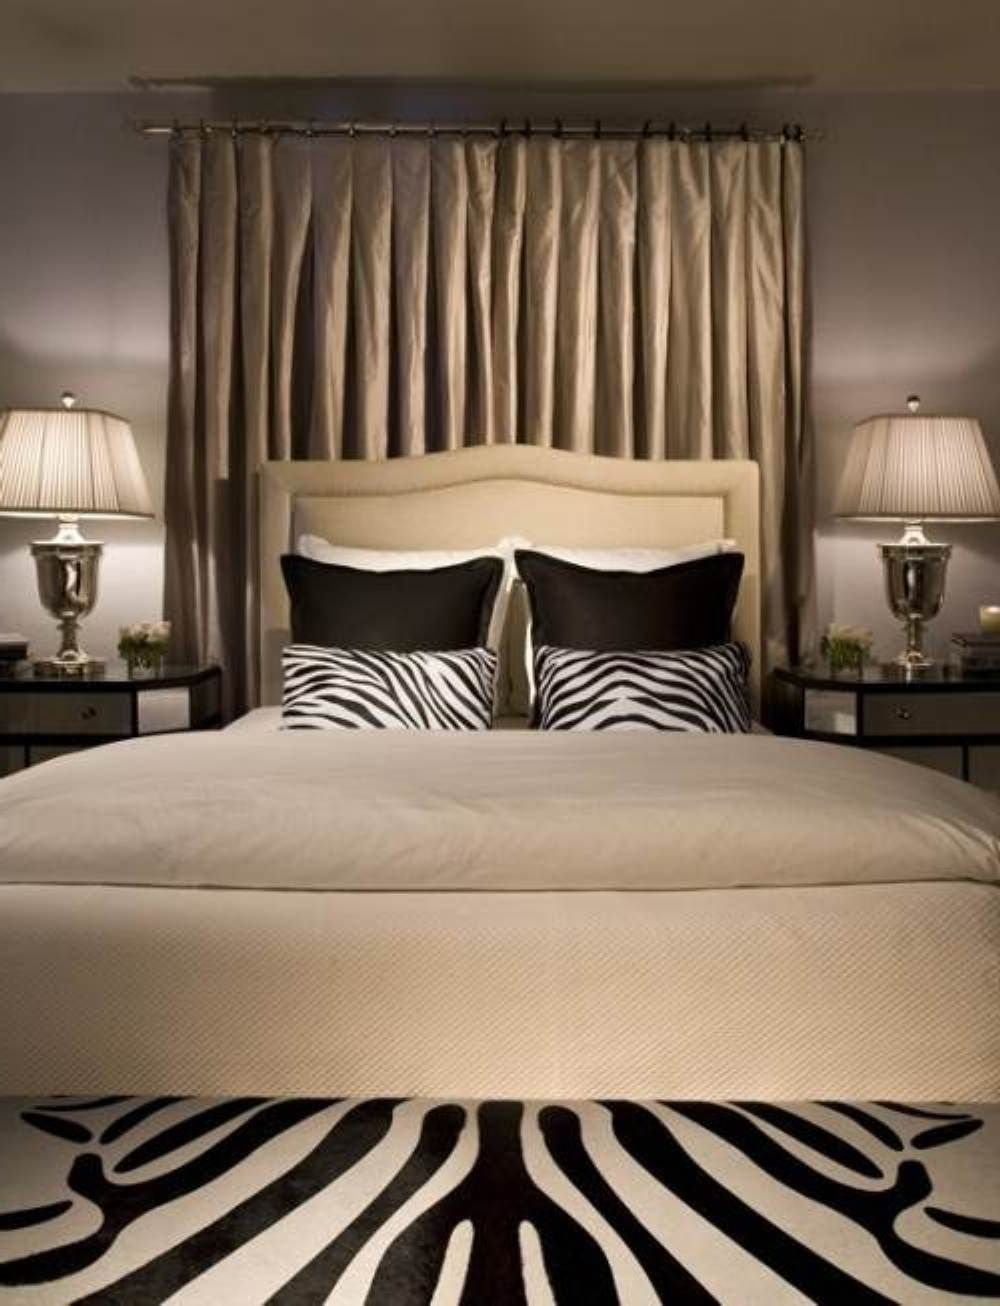 zebra print bedroom ideas for adults  Zebra print bedroom